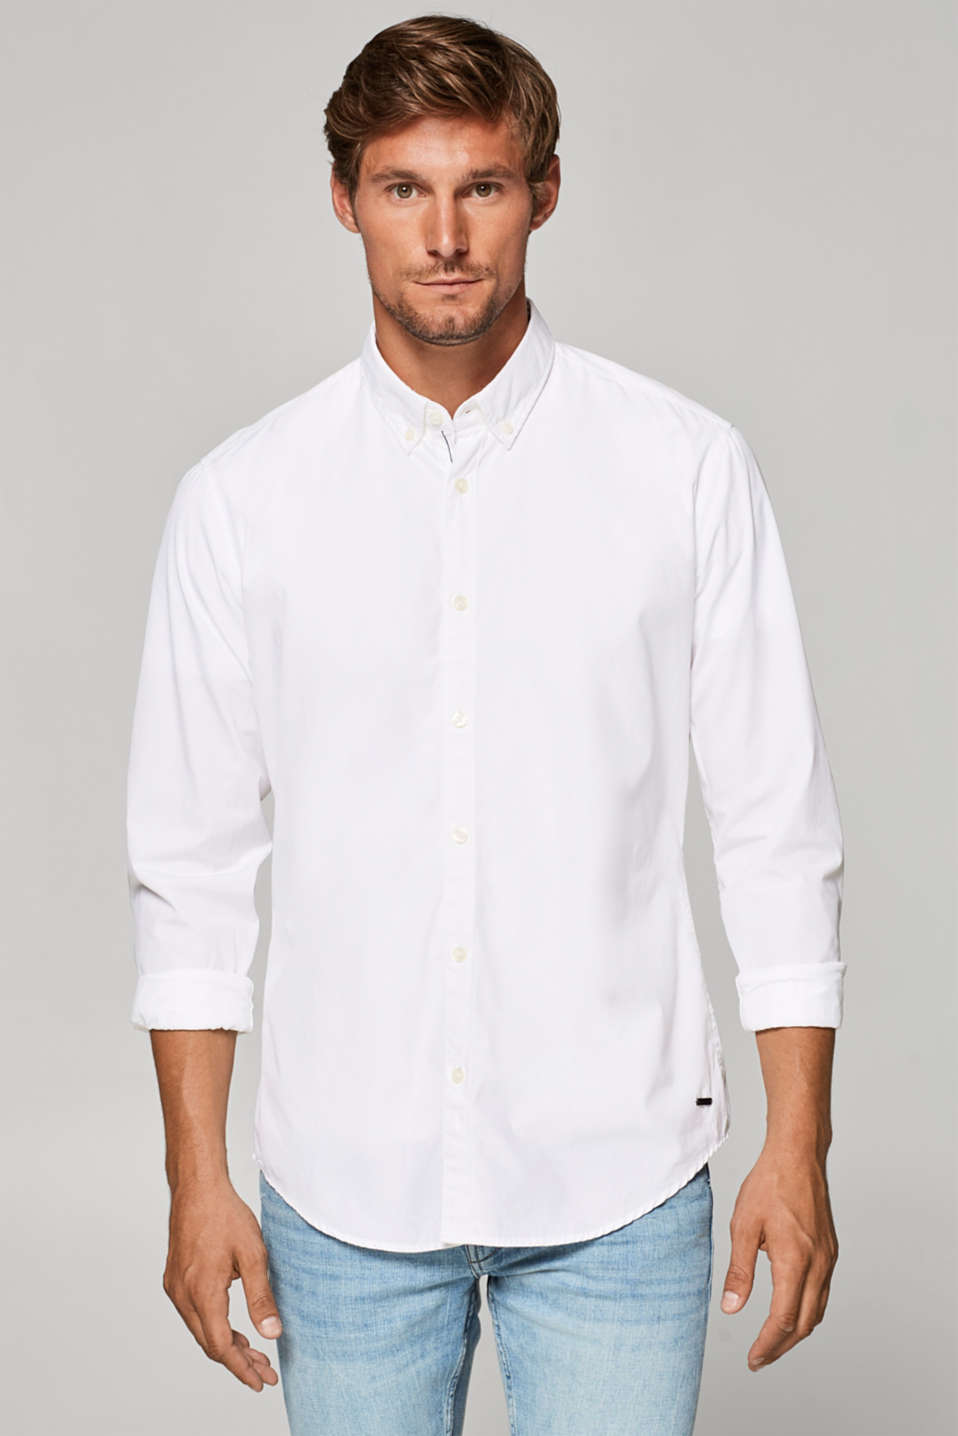 Esprit - Shirt in premium fabric, 100% cotton